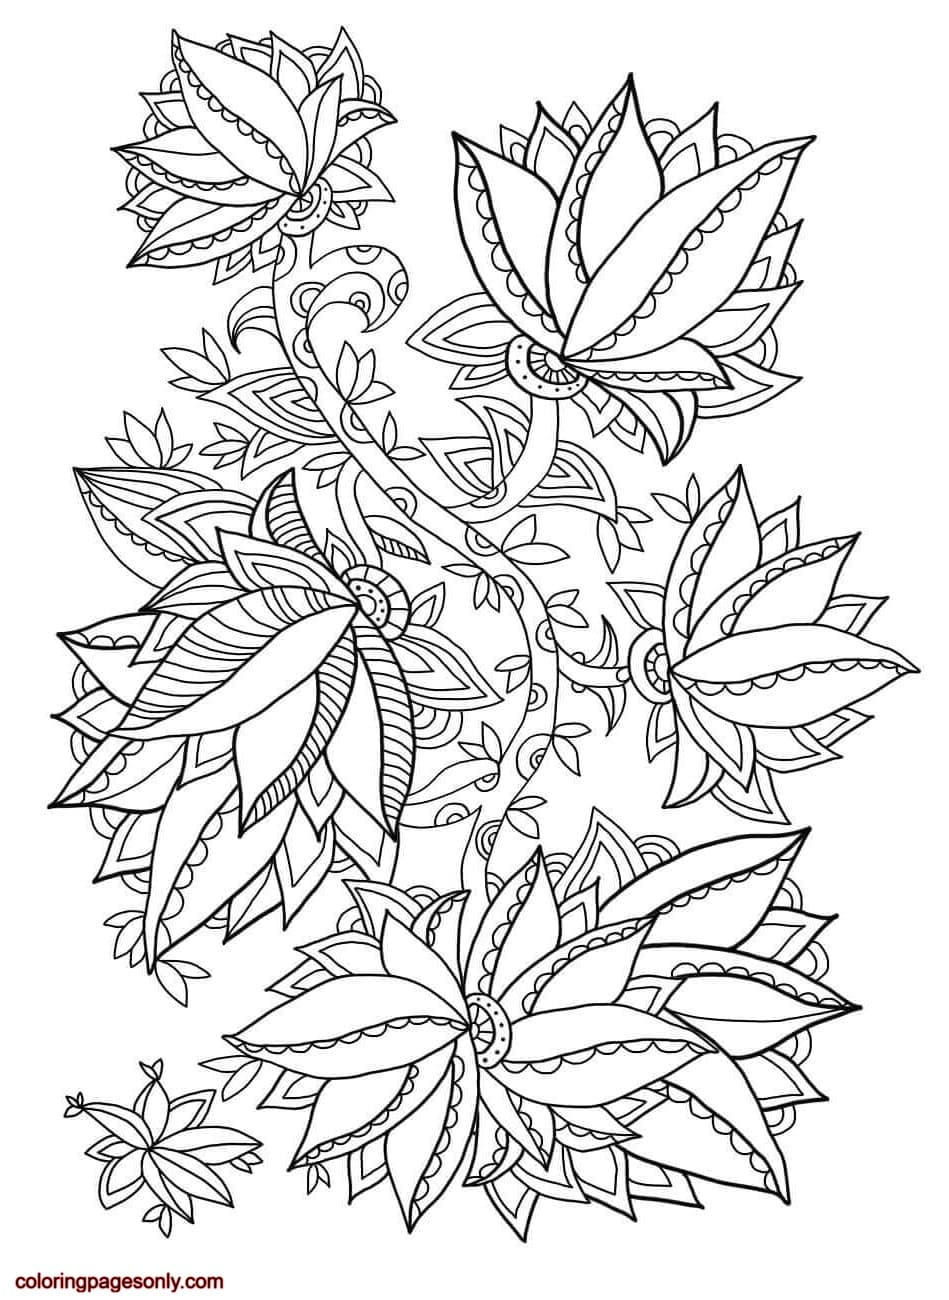 Floral Pattern 6 Coloring Page